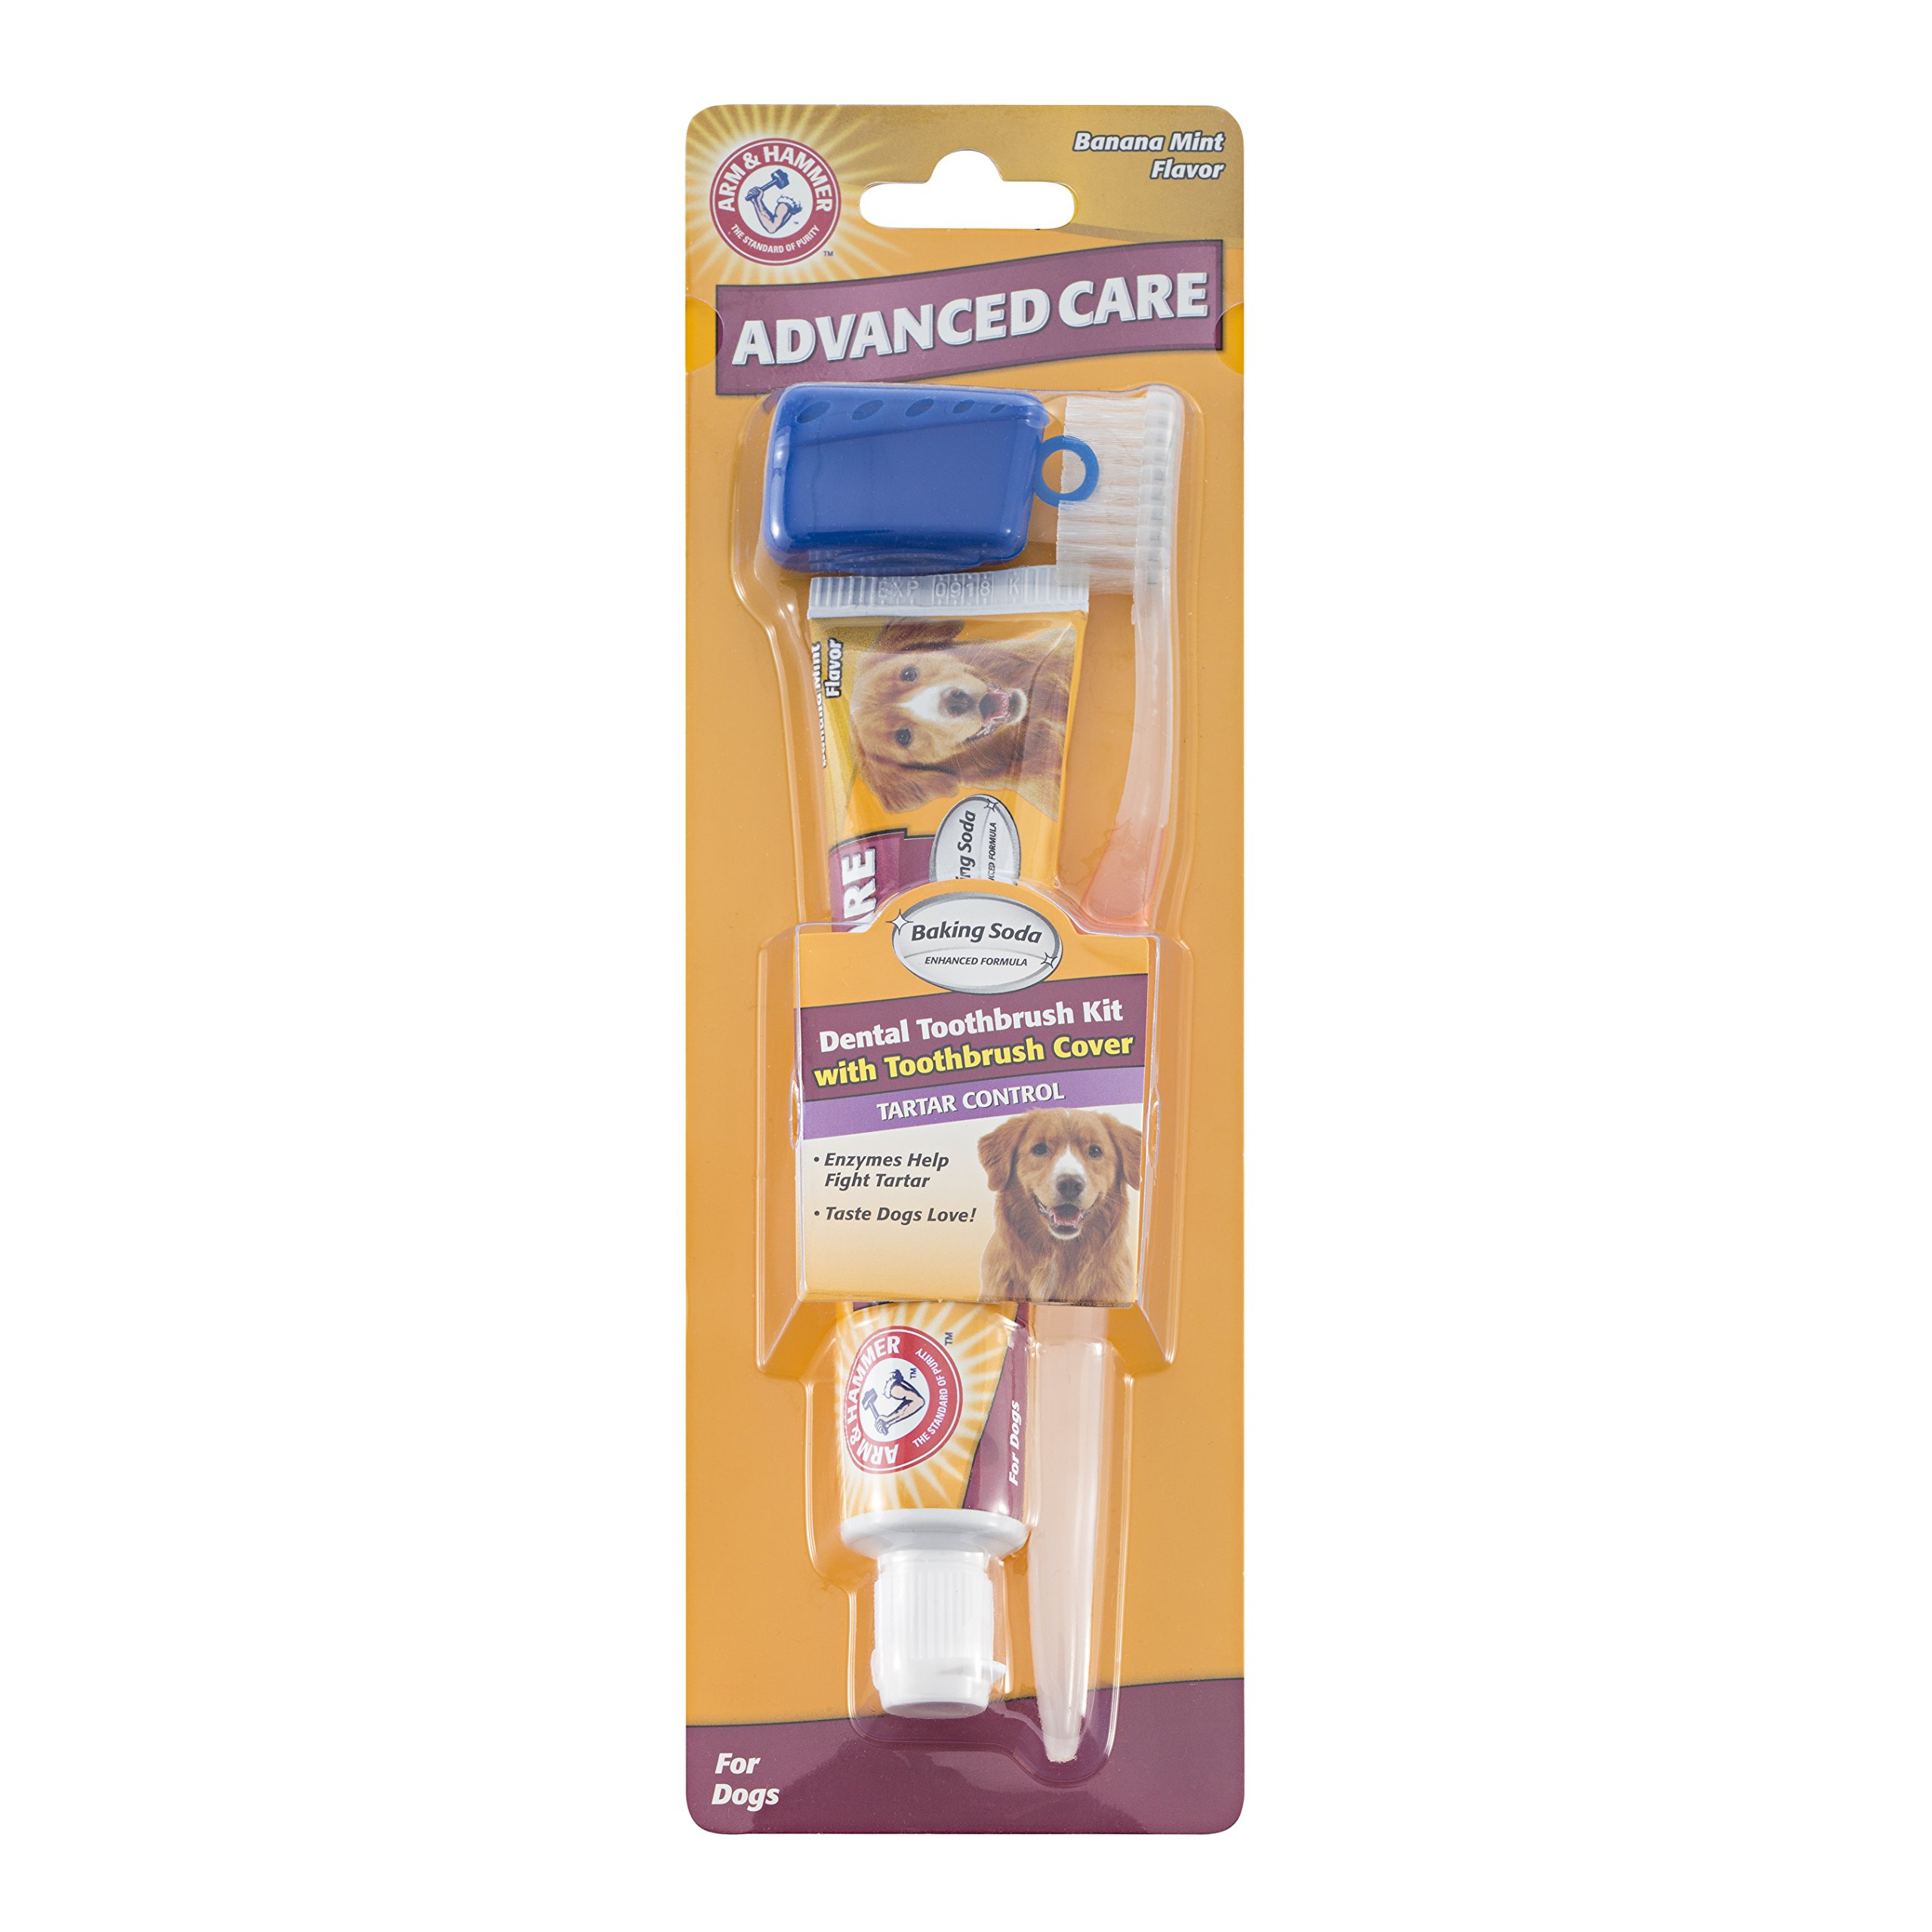 Arm & Hammer Dog Dental Care Tartar Control Kit for Dogs | Contains Toothpaste, Toothbrush & Fingerbrush | Reduces Plaque & Tartar Buildup, 3-Piece Kit, Banana Mint Flavor